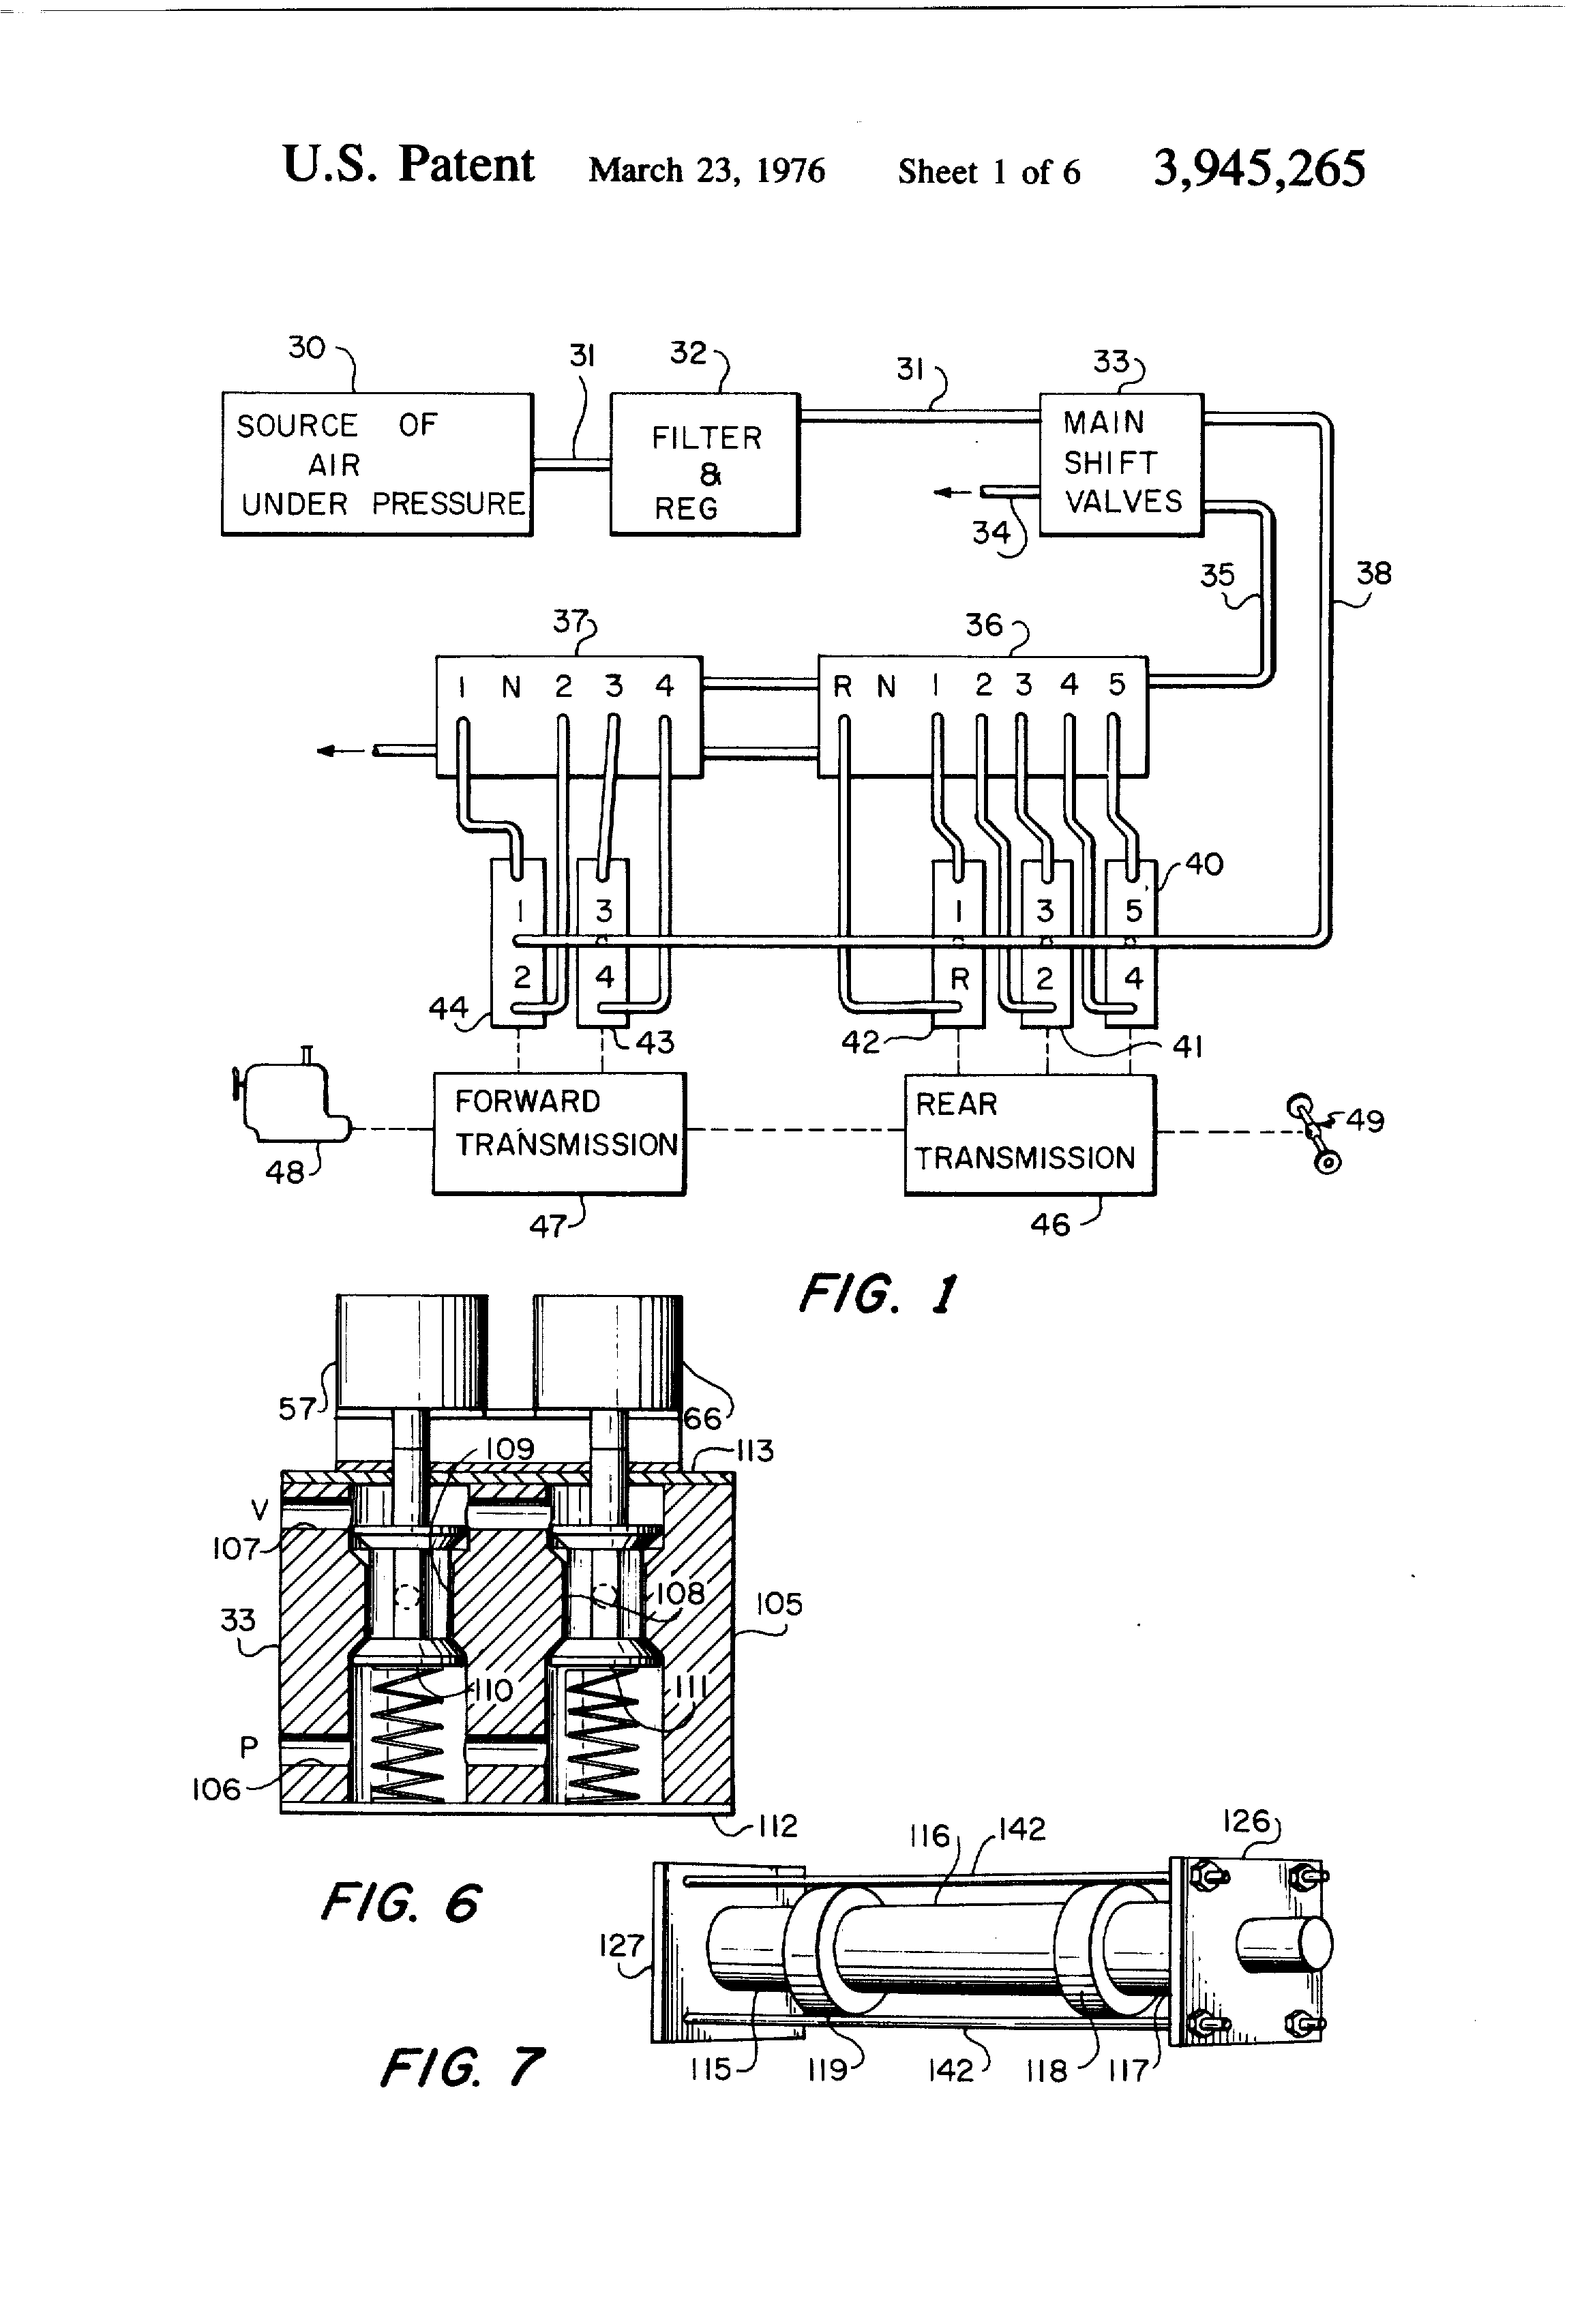 Wiring Diagram Eaton Transmission 33 Images Induction Furnace Free Download Schematic Us3945265 1 Patent Fluid Actuated Gear Changing System Google Automatic At